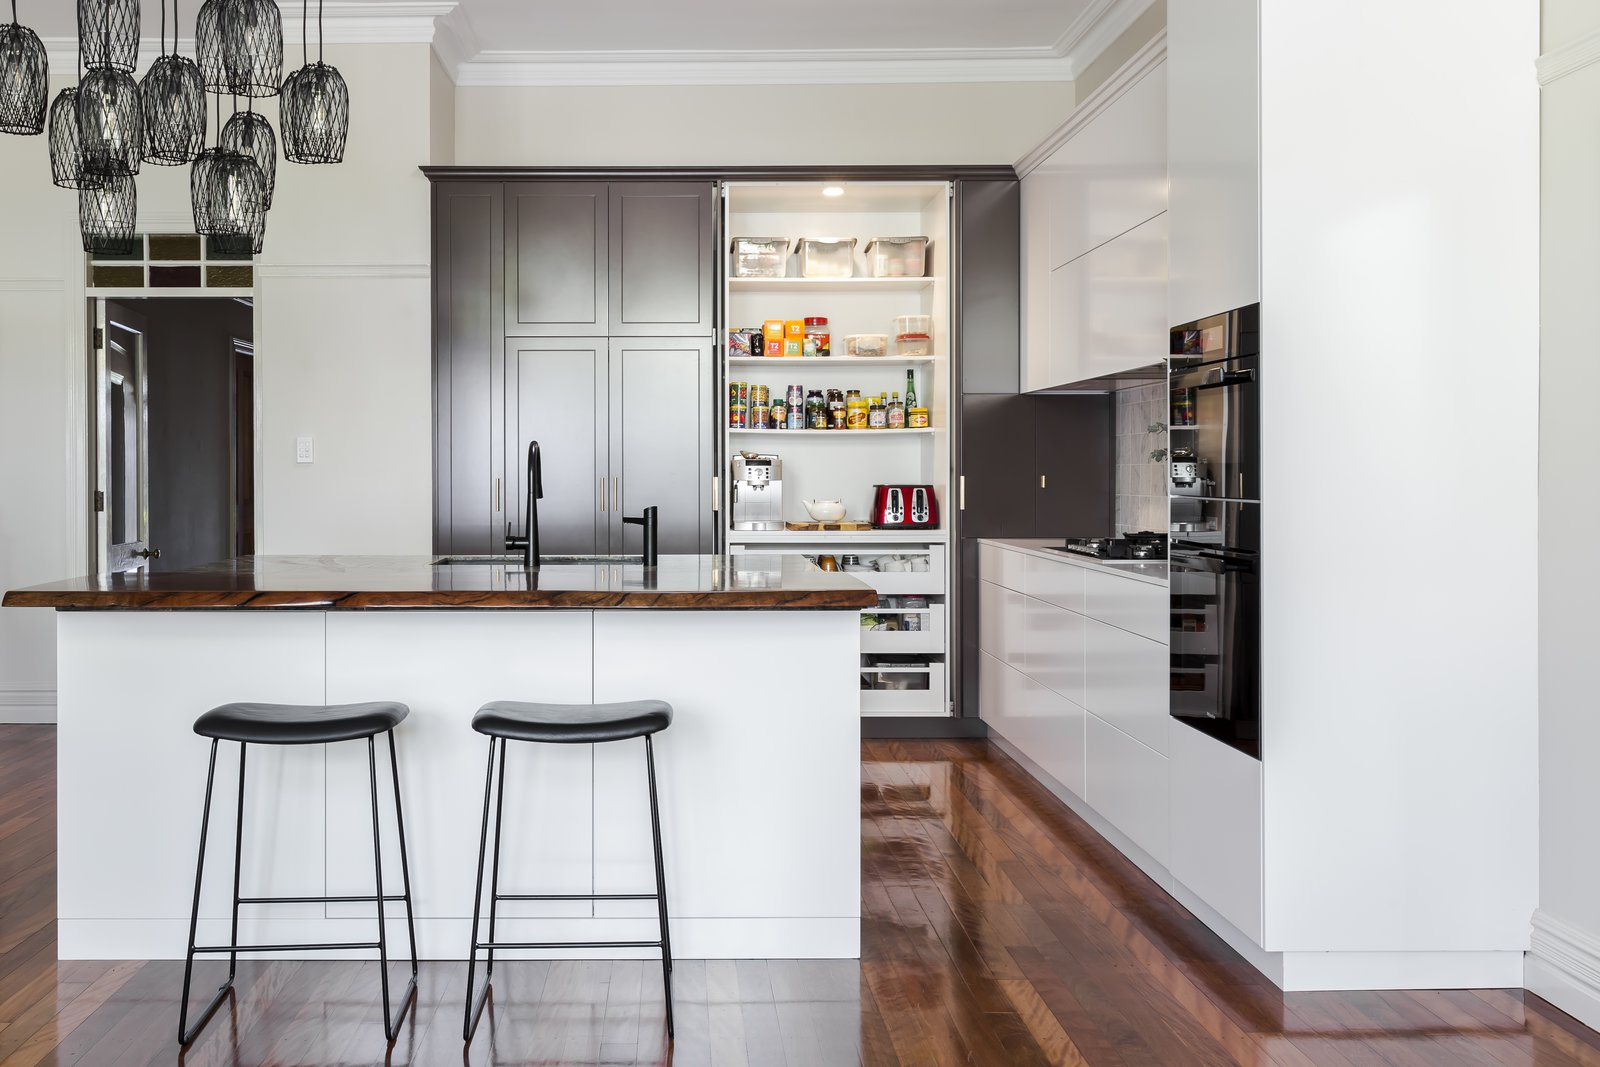 10 Design Tips For Kitchens According To Expert